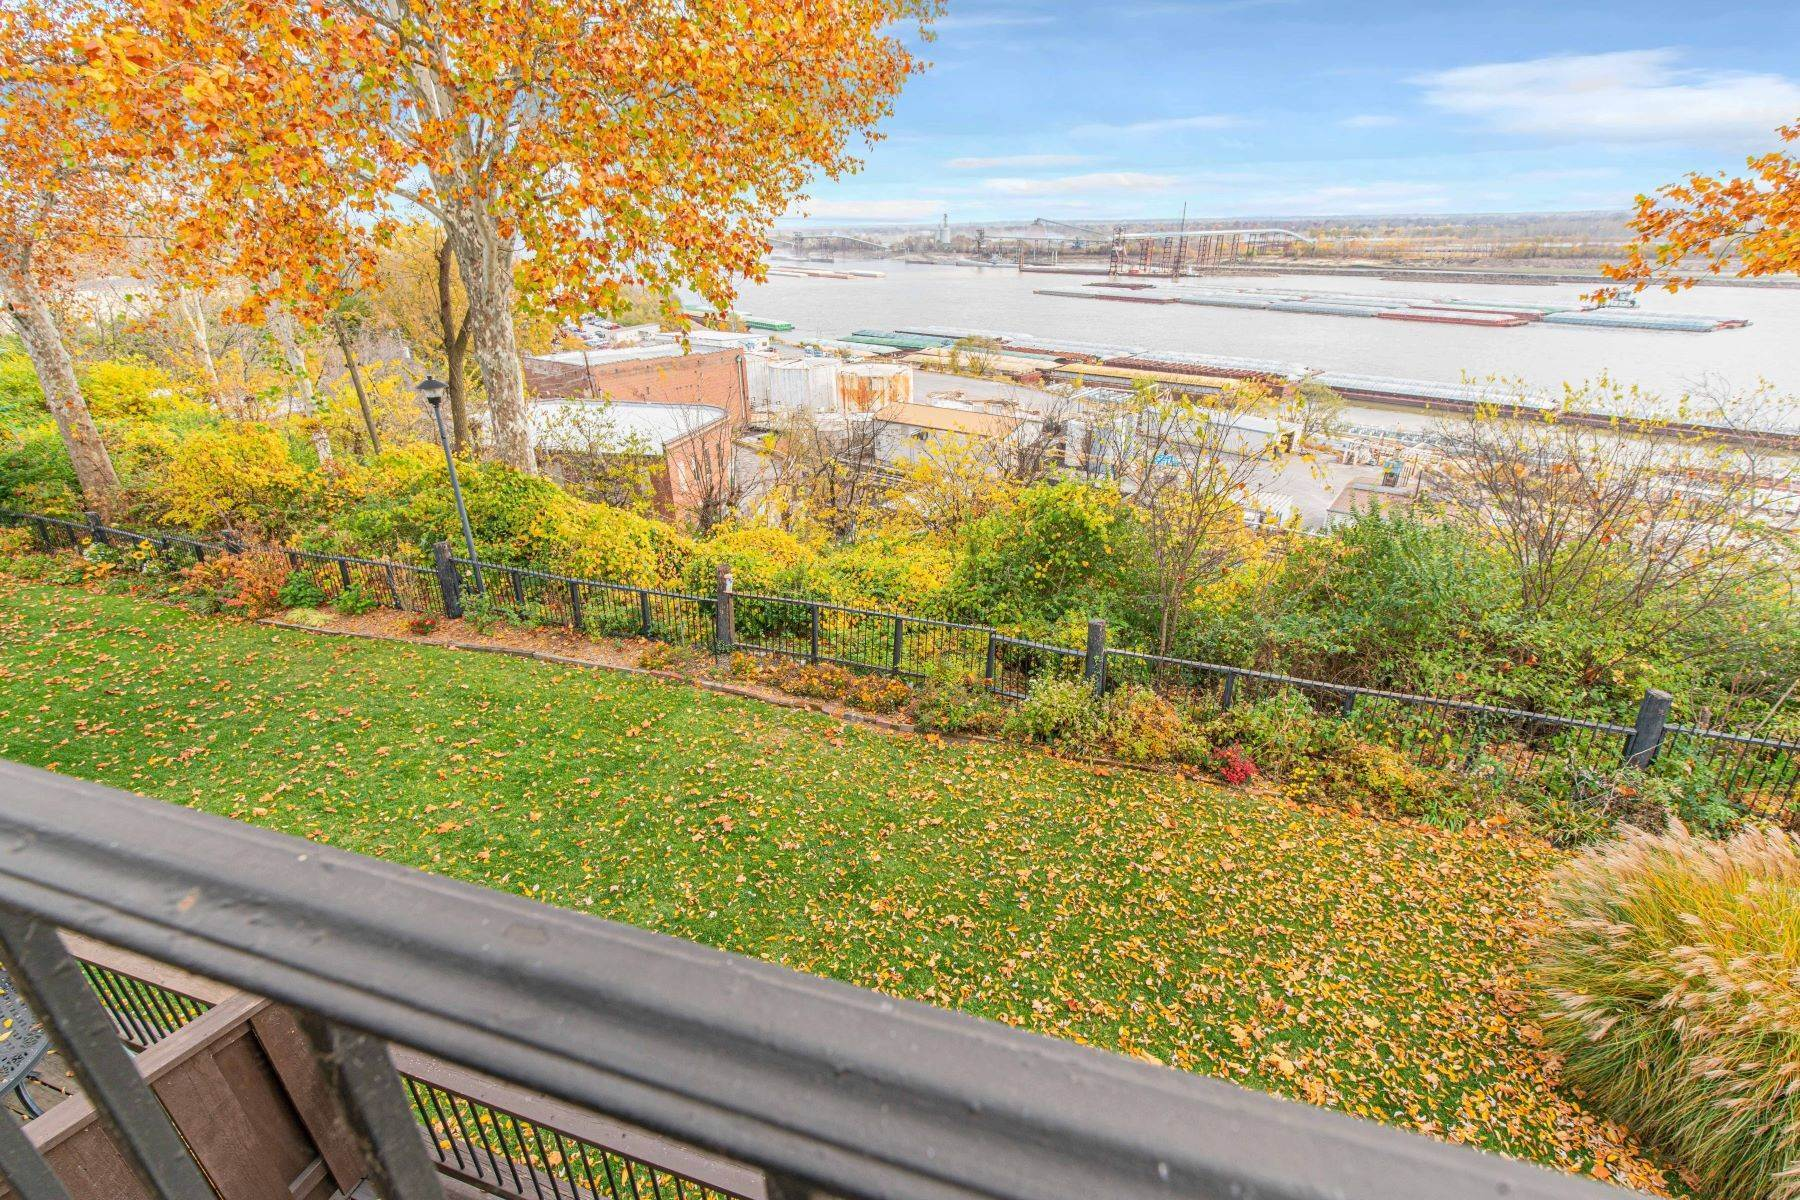 24. Condominiums for Sale at Great Riverview St. Louis City Condo 4554 Ohio Avenue St. Louis, Missouri 63111 United States